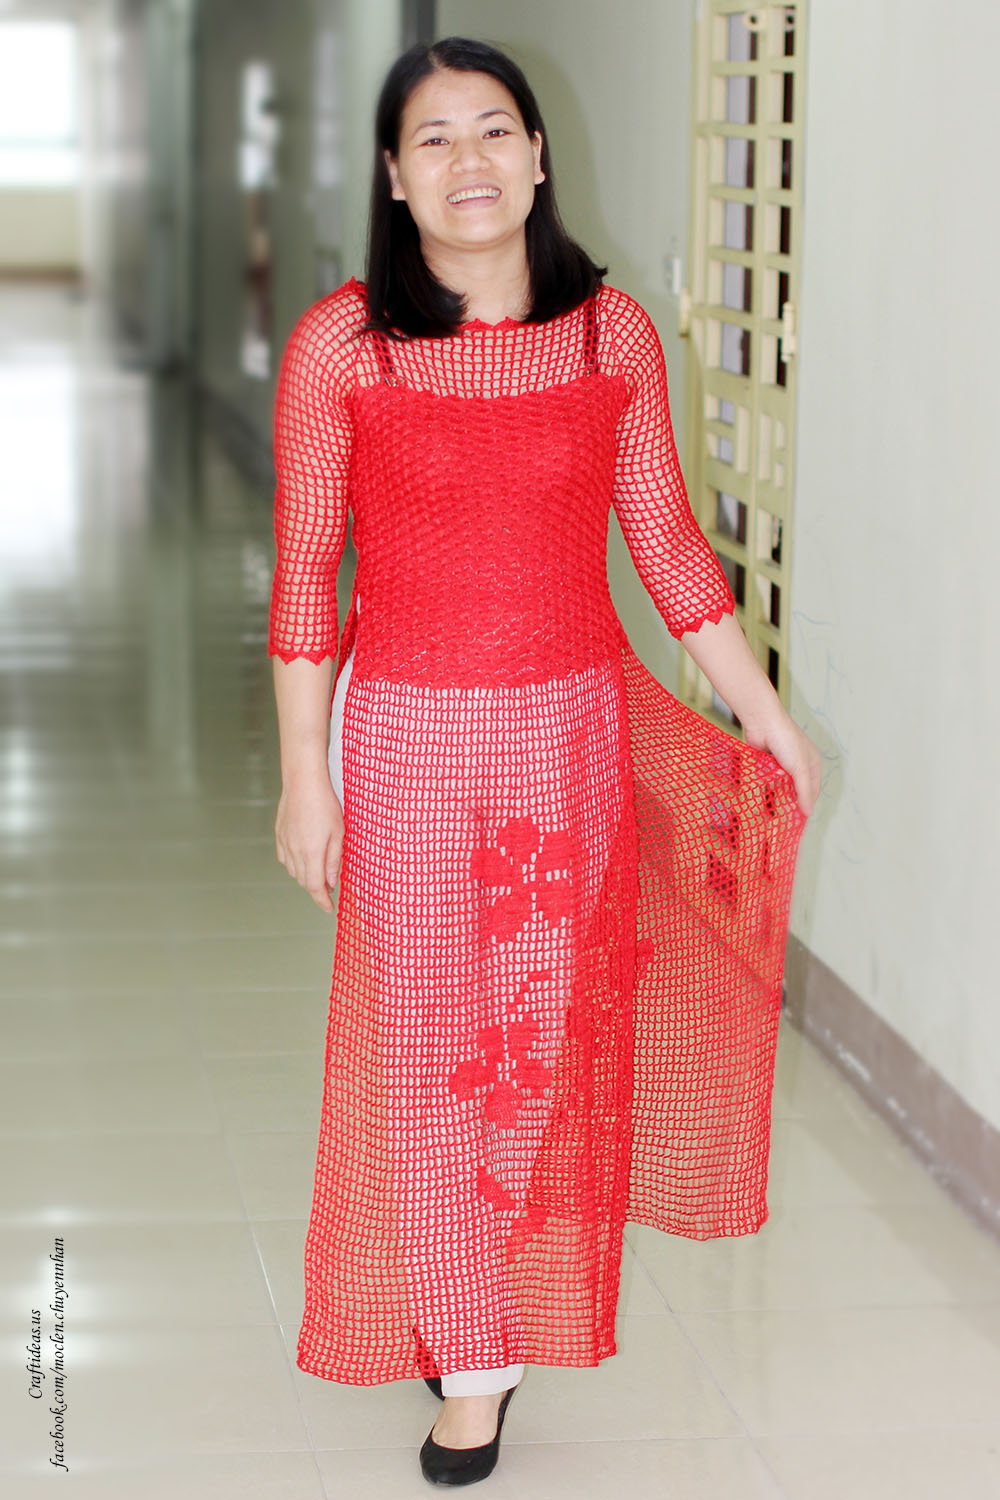 Crochet red Vietnam dress for Tet holiday